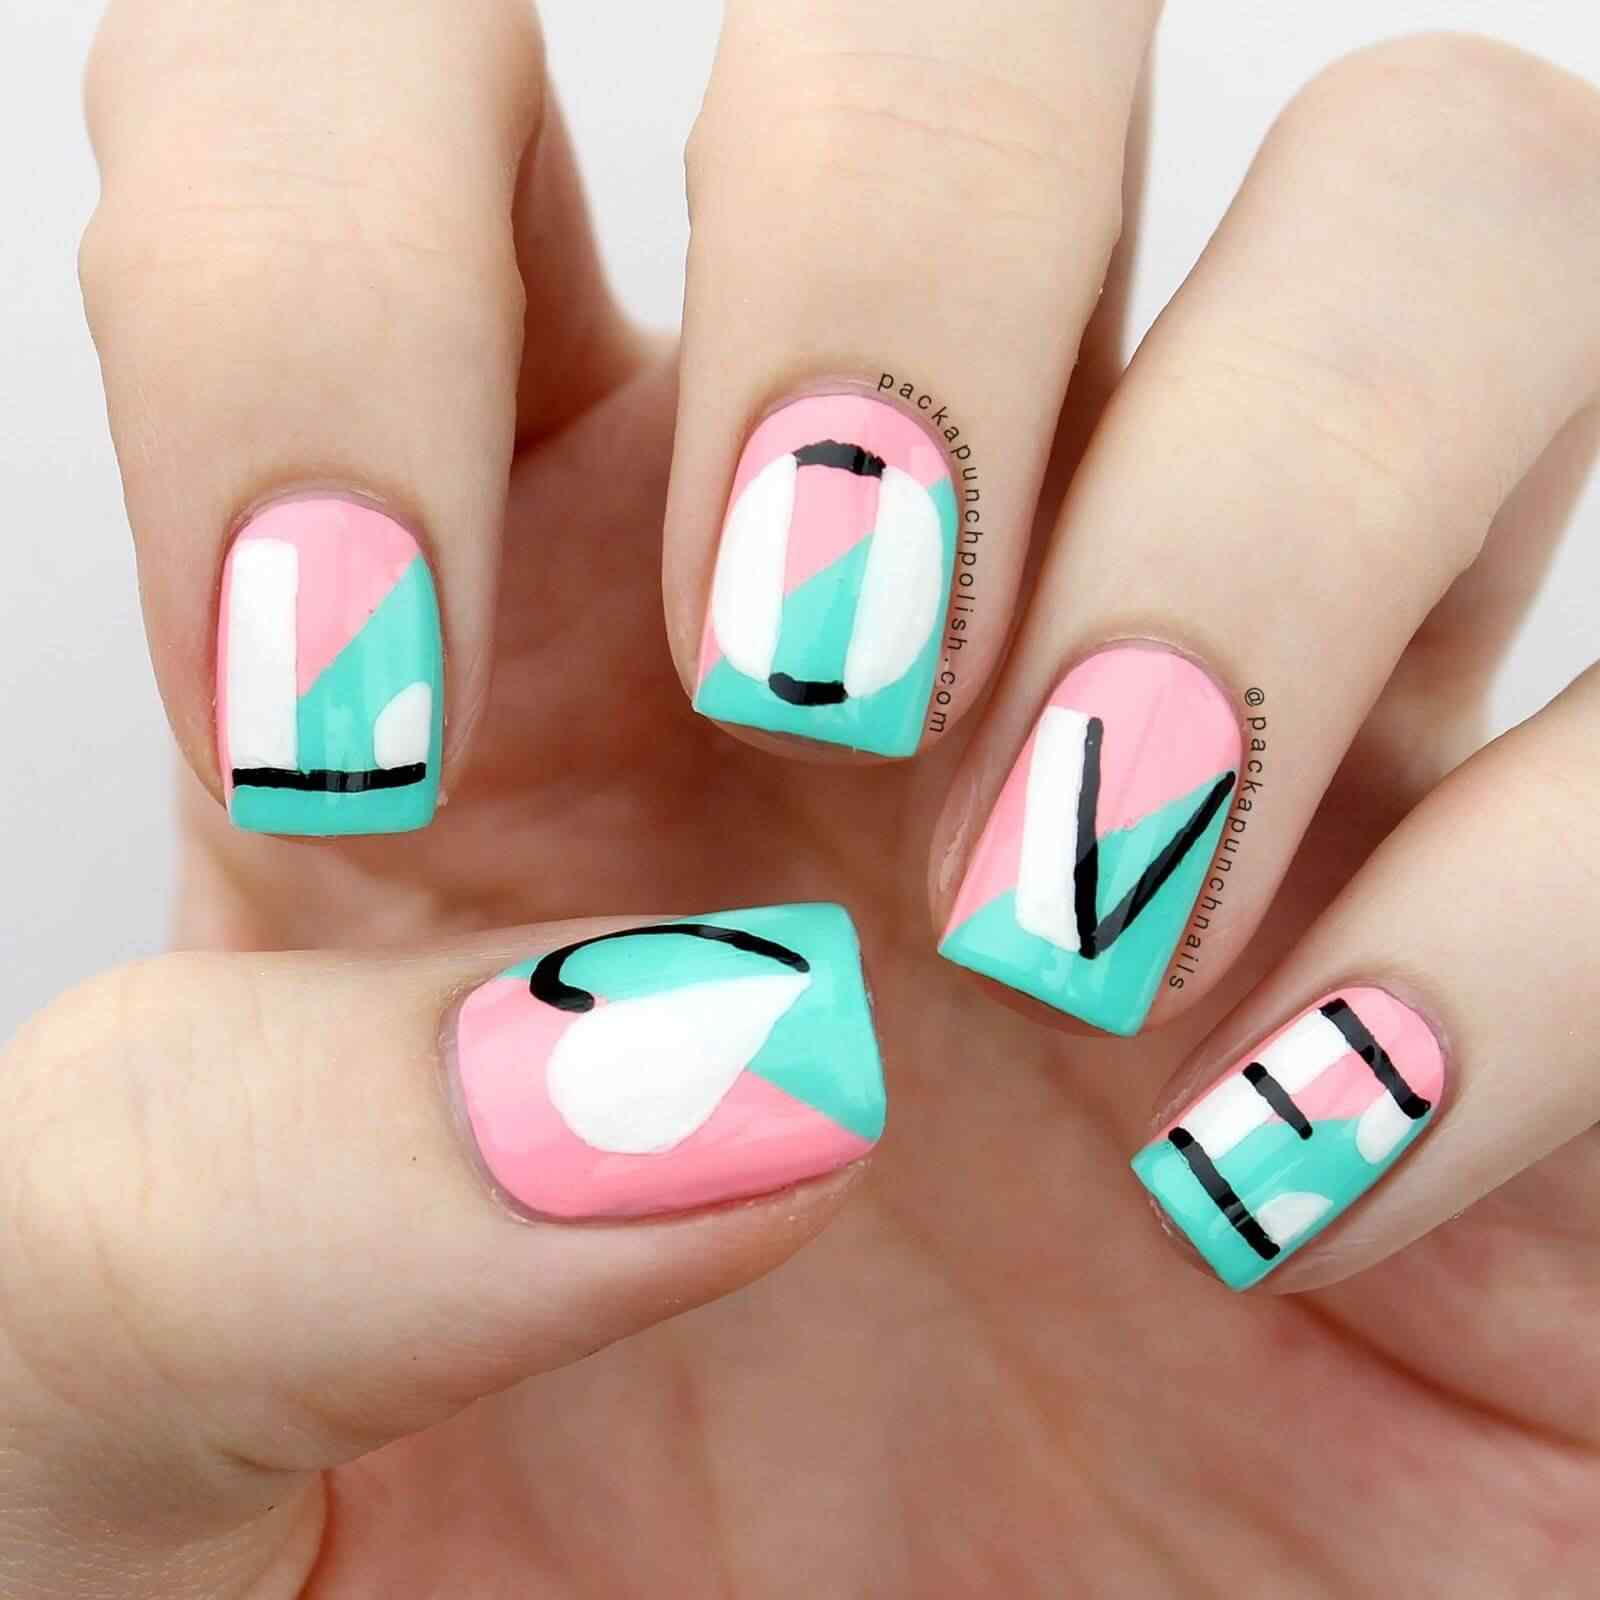 Fuente: http://shortnaildesigns.net/37-cute-and-easy-diy-nail-designs-for-beginners/